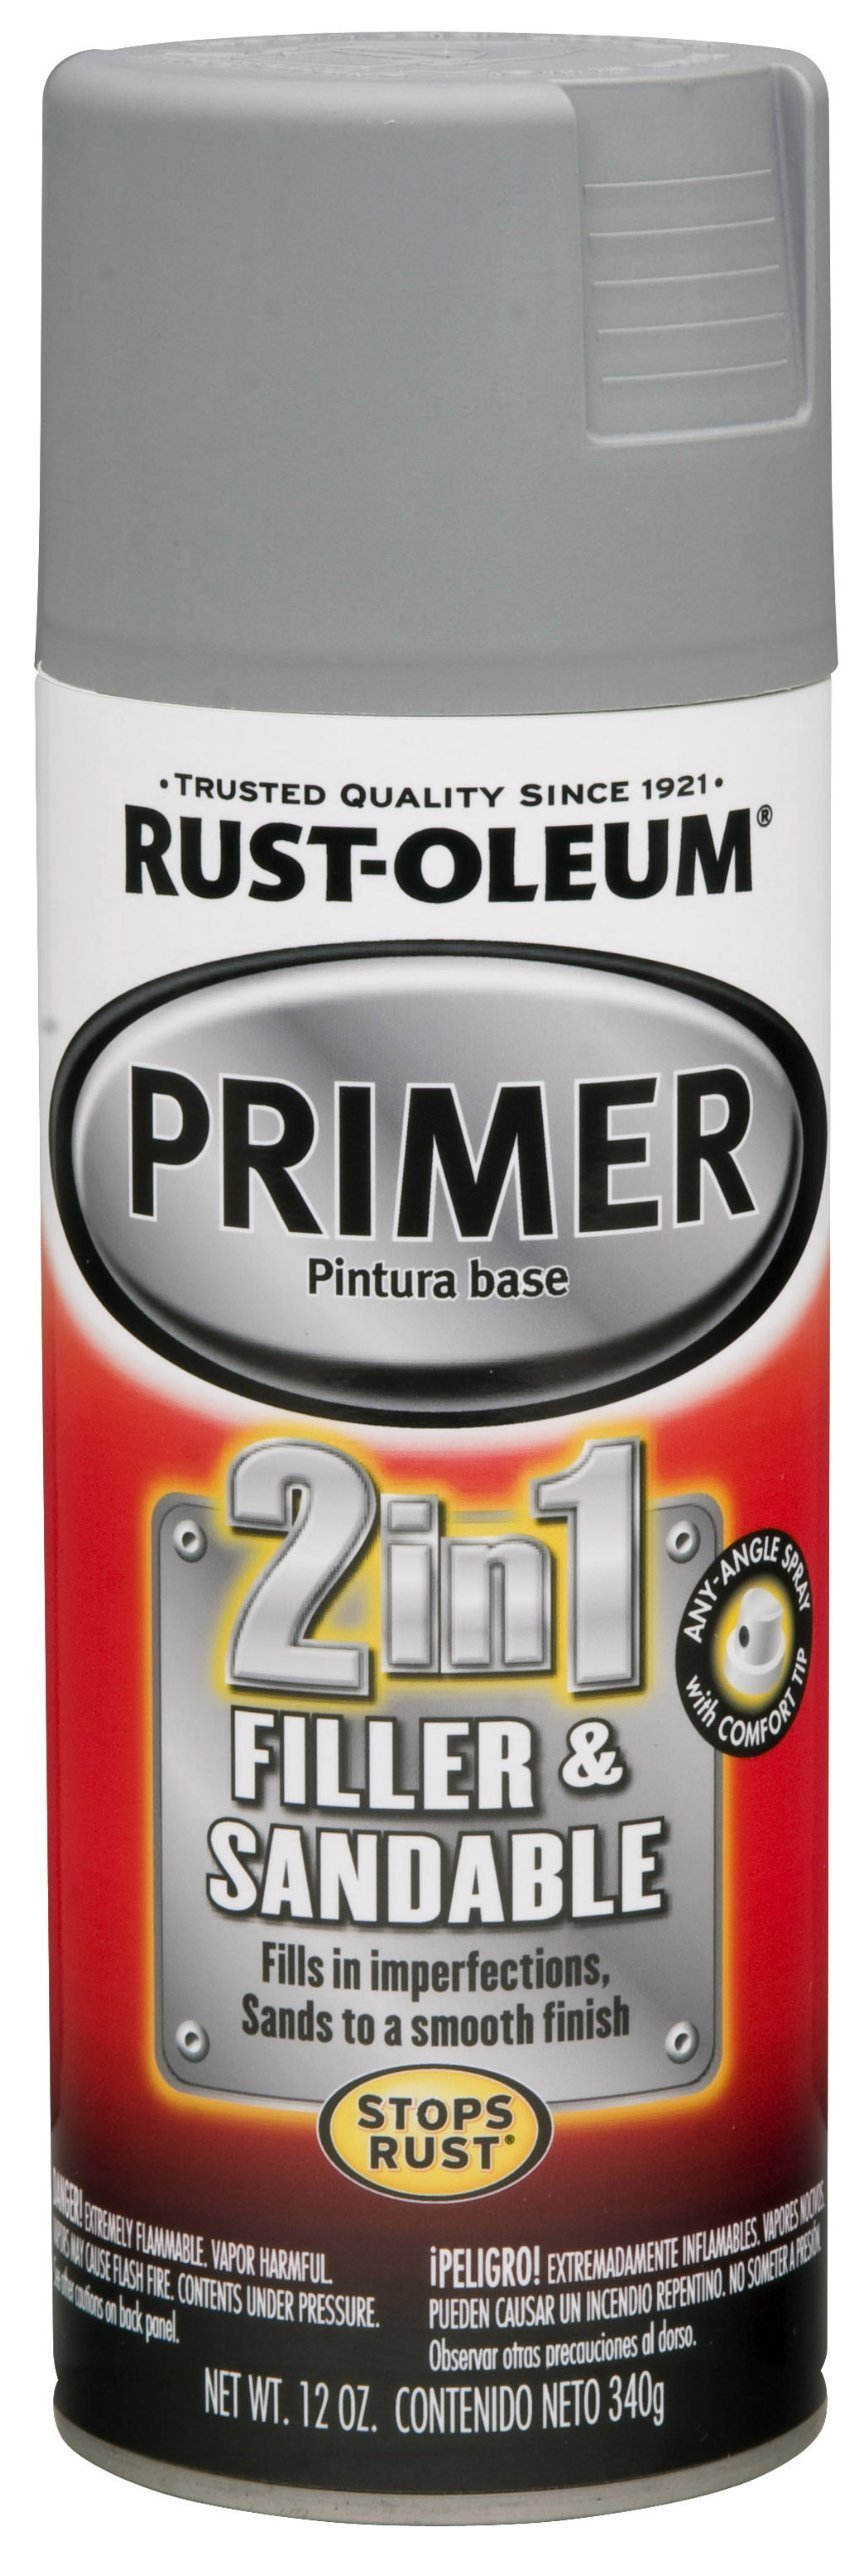 Rust-Oleum Automotive 260510 12-Ounce 2 In 1 Filler and Sandable Primer Spray, Gray - 6 Pack